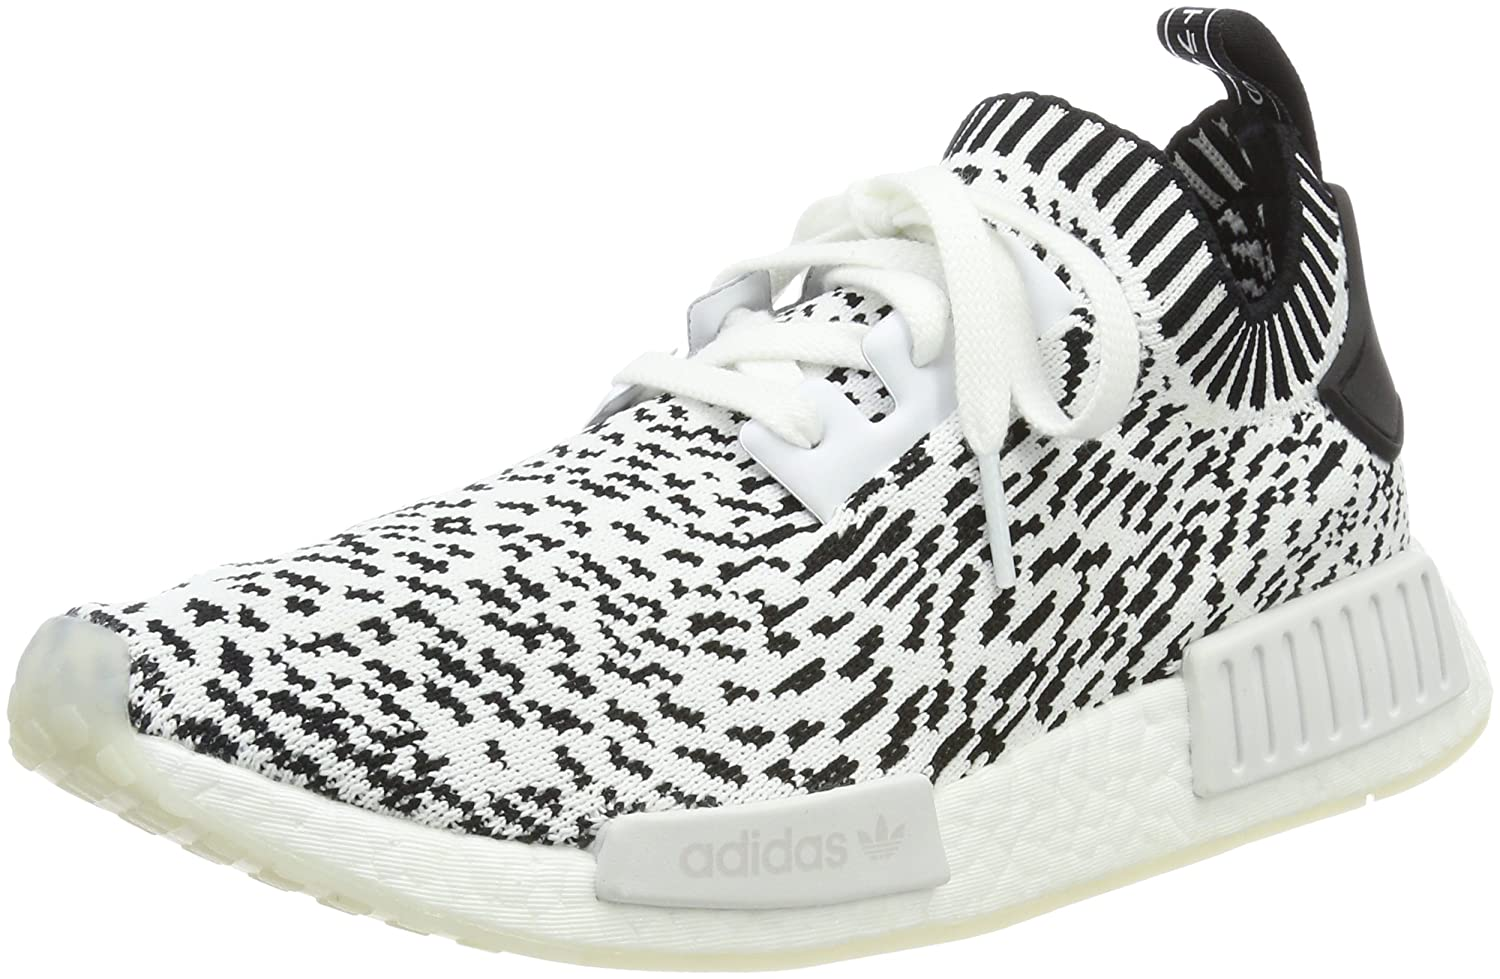 competitive price 0492a 414ae adidas NMD R1 Primeknit (11, BZ0219 White/Black)